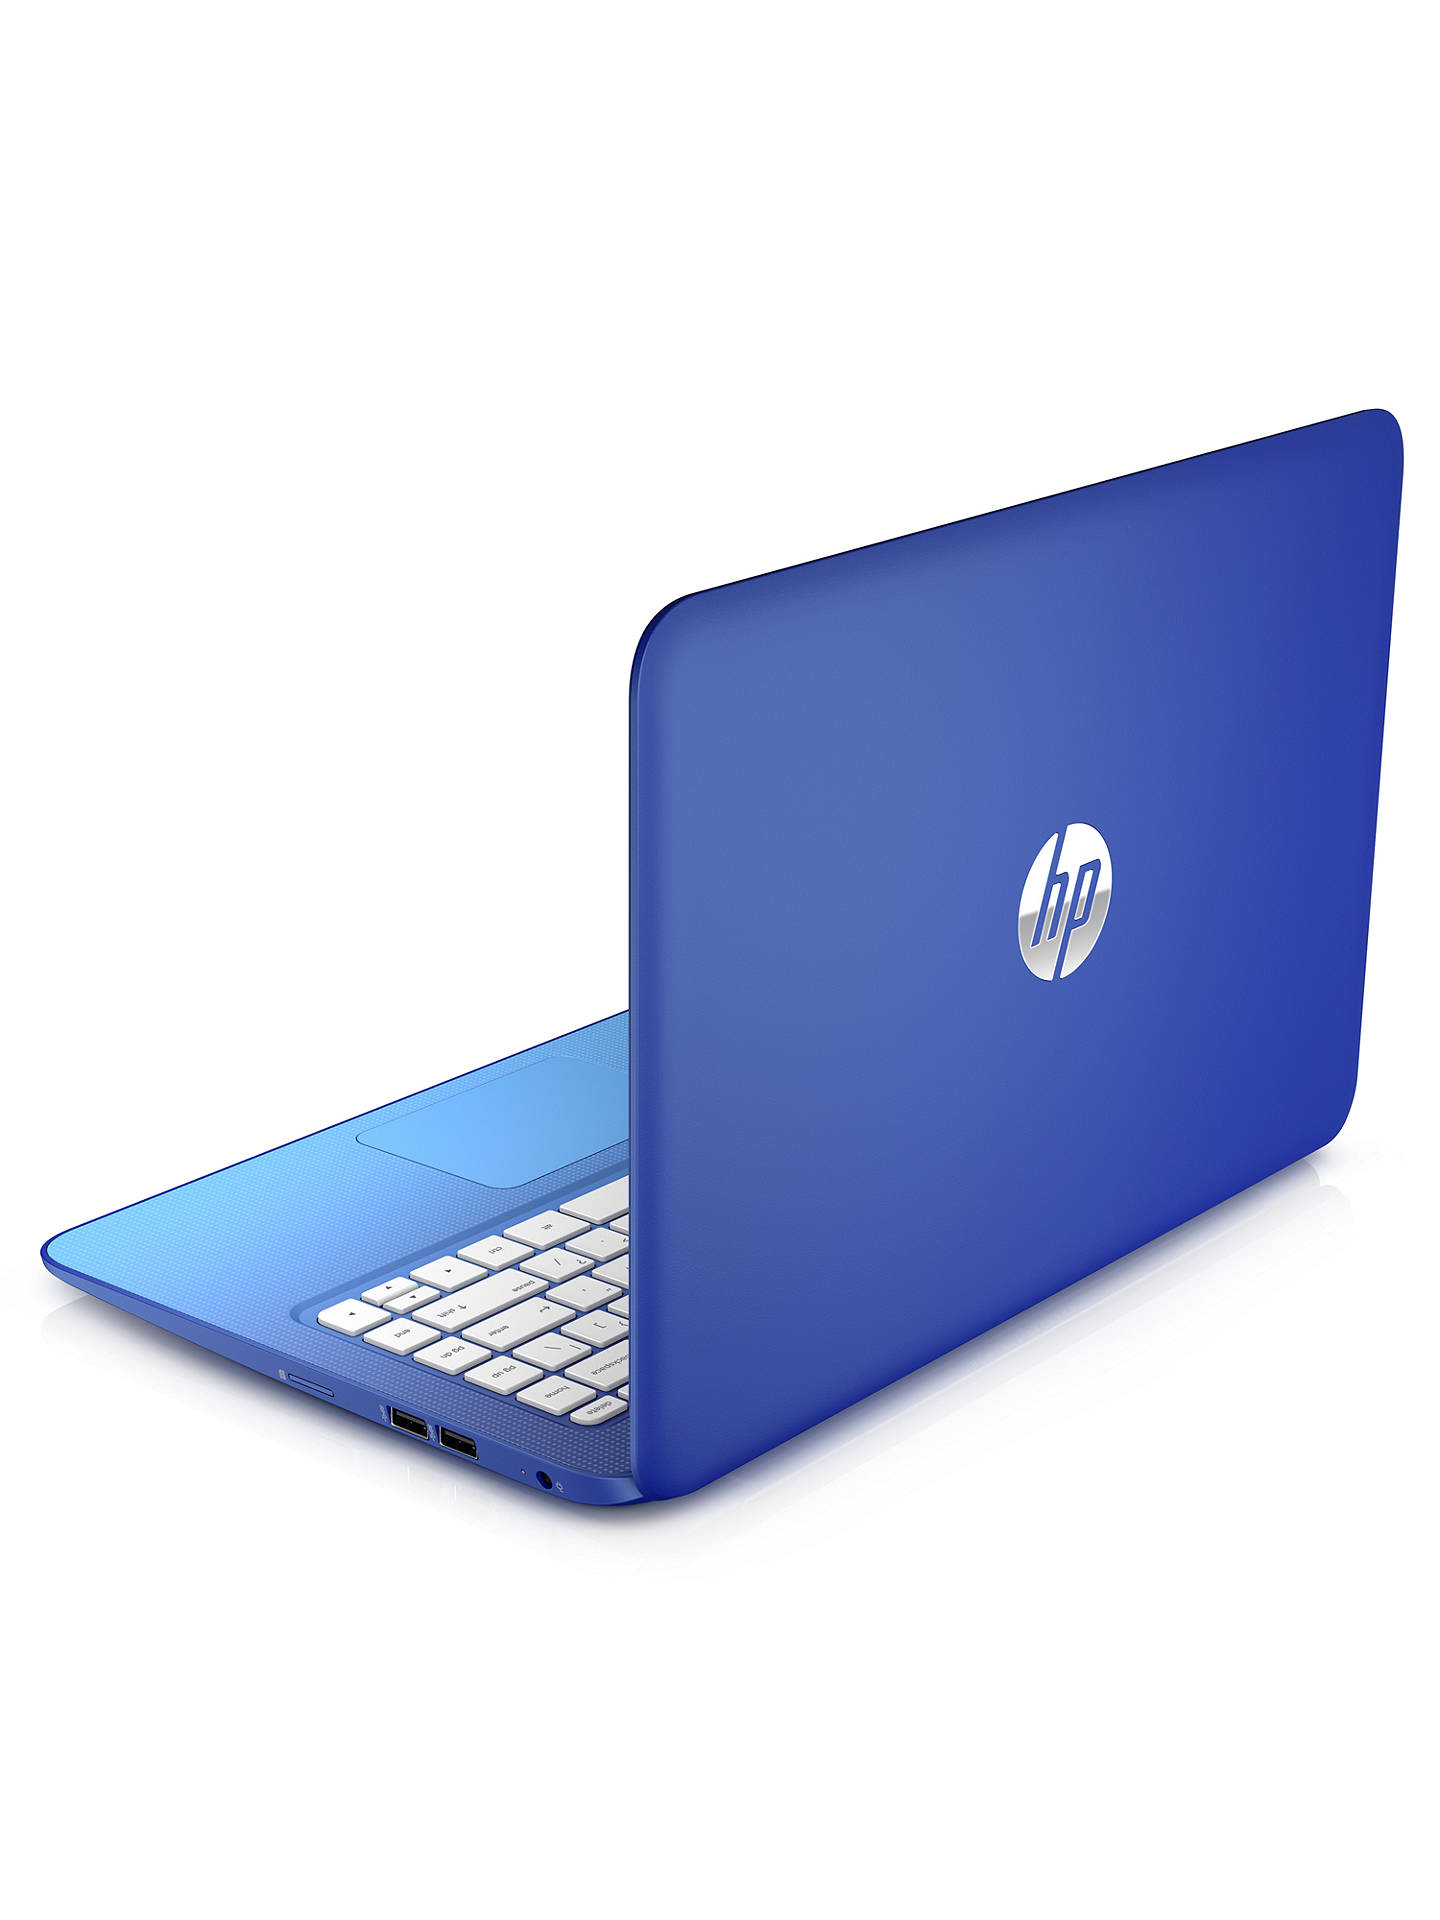 "Buy HP Stream 13 Laptop, Intel Celeron, 2GB RAM, 32GB Flash Storage, Windows 8.1 & Office 365, 13.3"" Touch Screen, Blue Online at johnlewis.com"